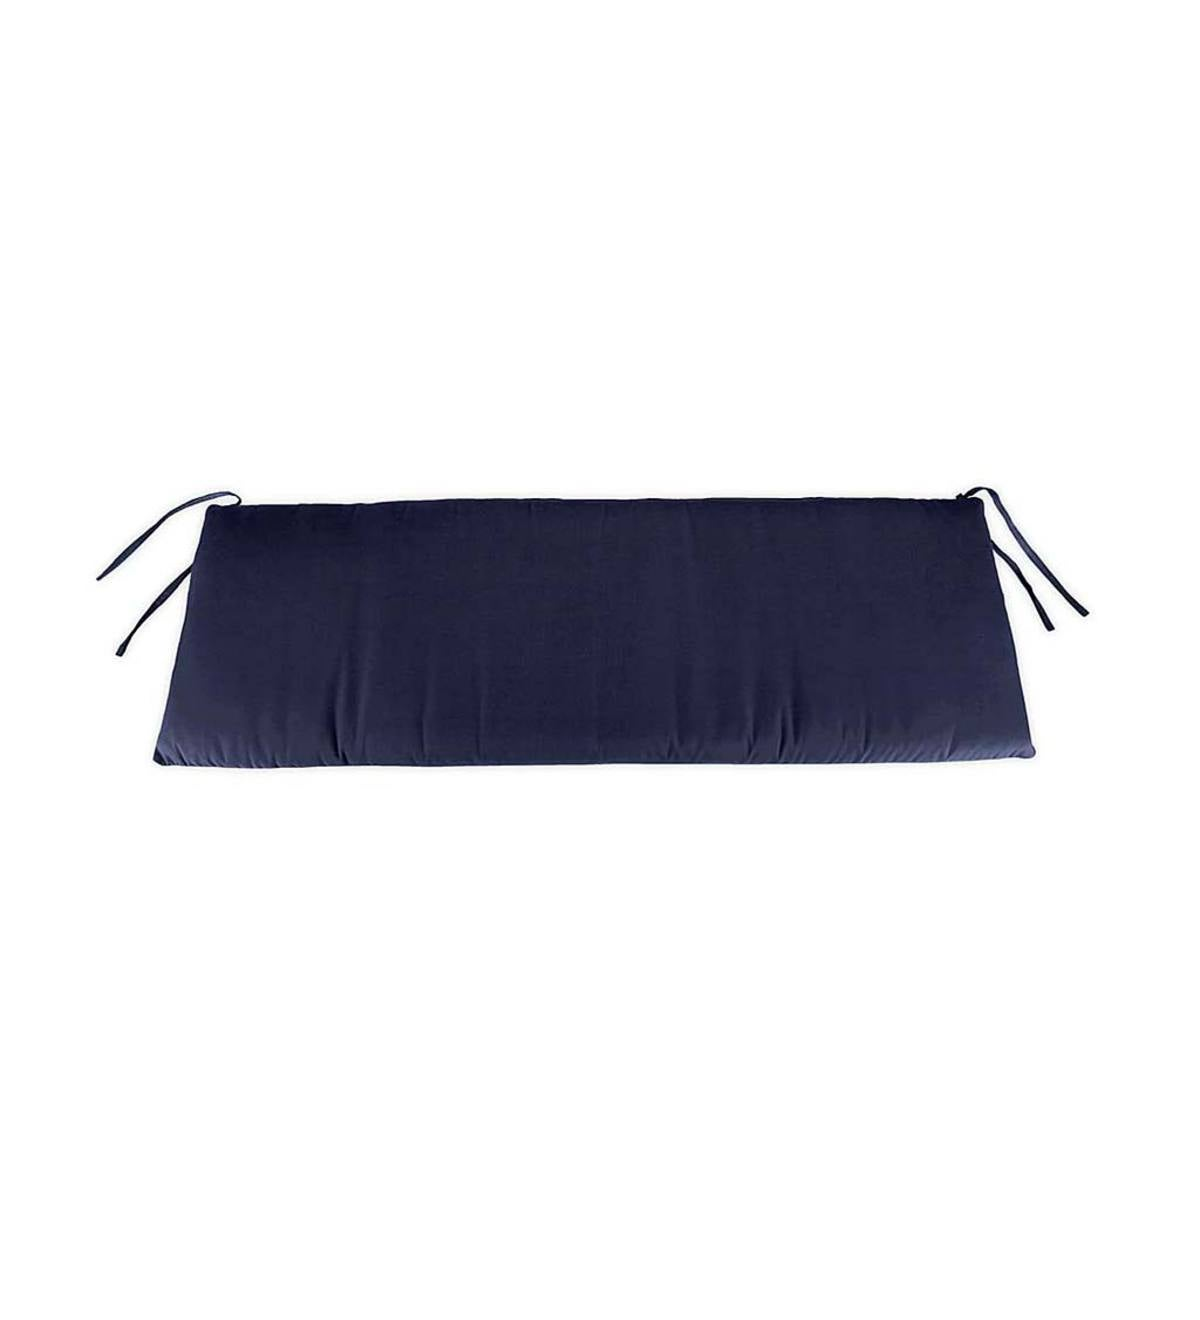 Box-Edged Polyester Deluxe Swing/Bench Cushion With Ties